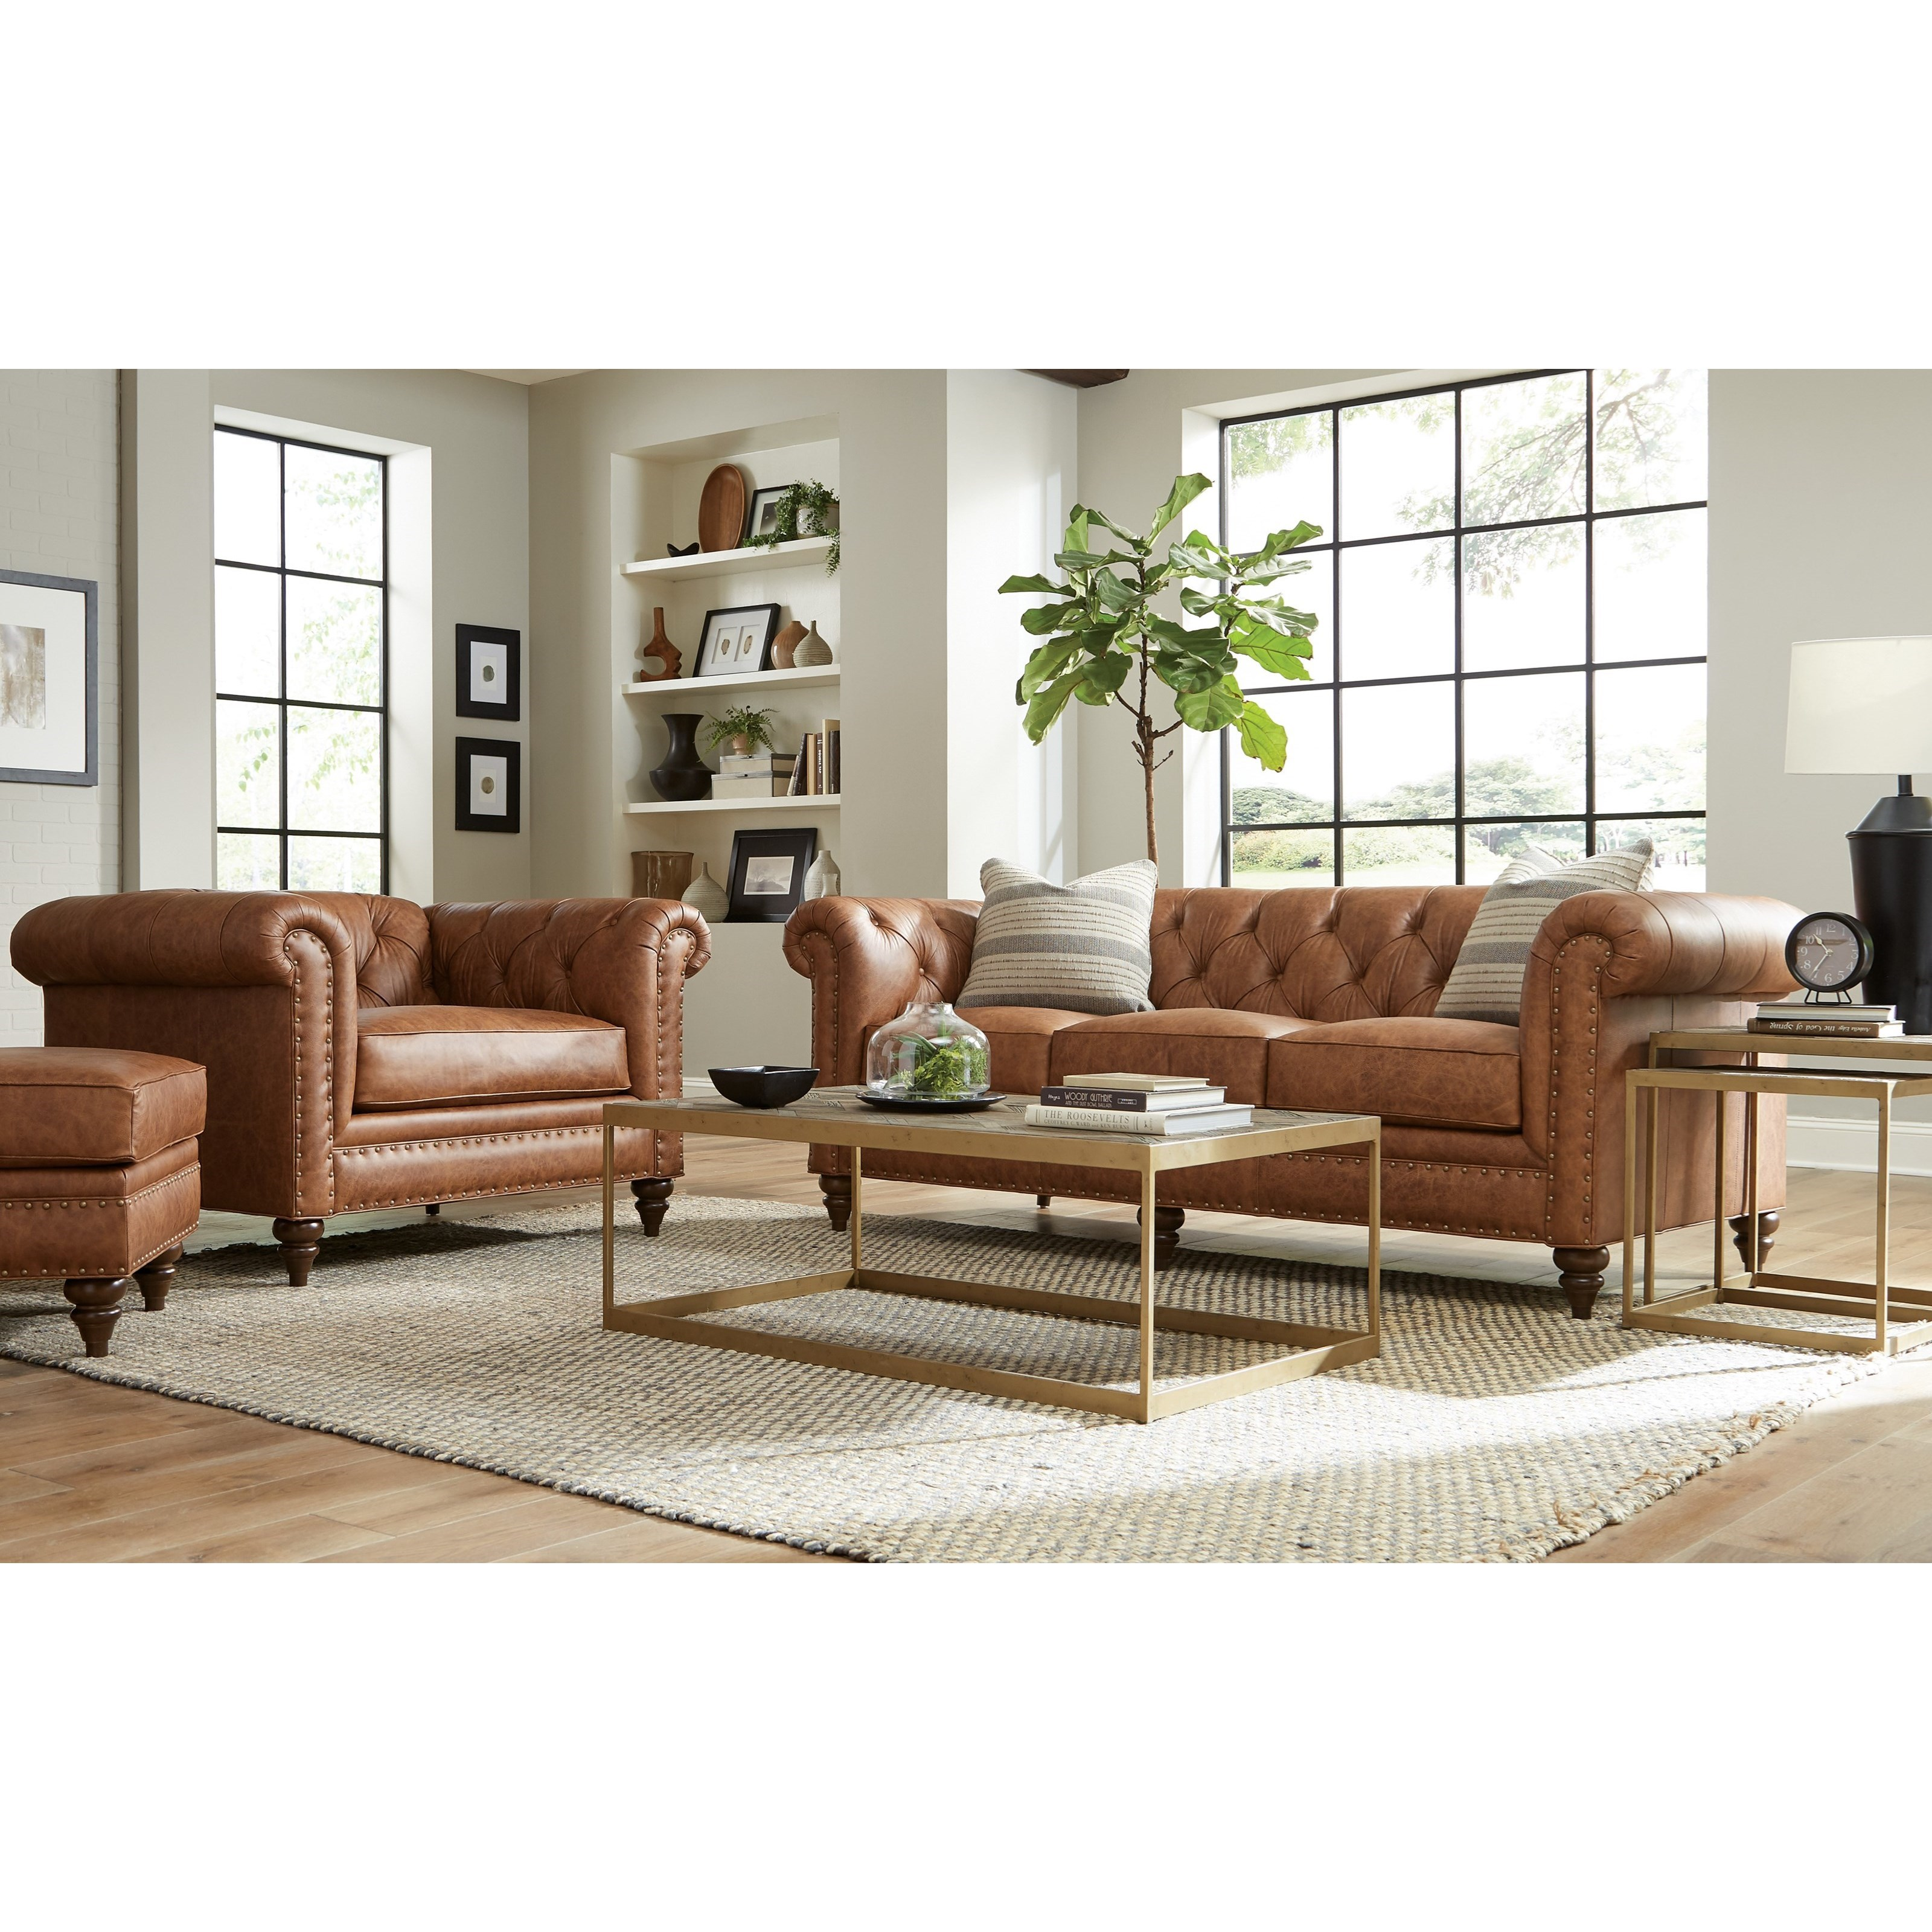 L743150 Living Room Group by Craftmaster at Suburban Furniture